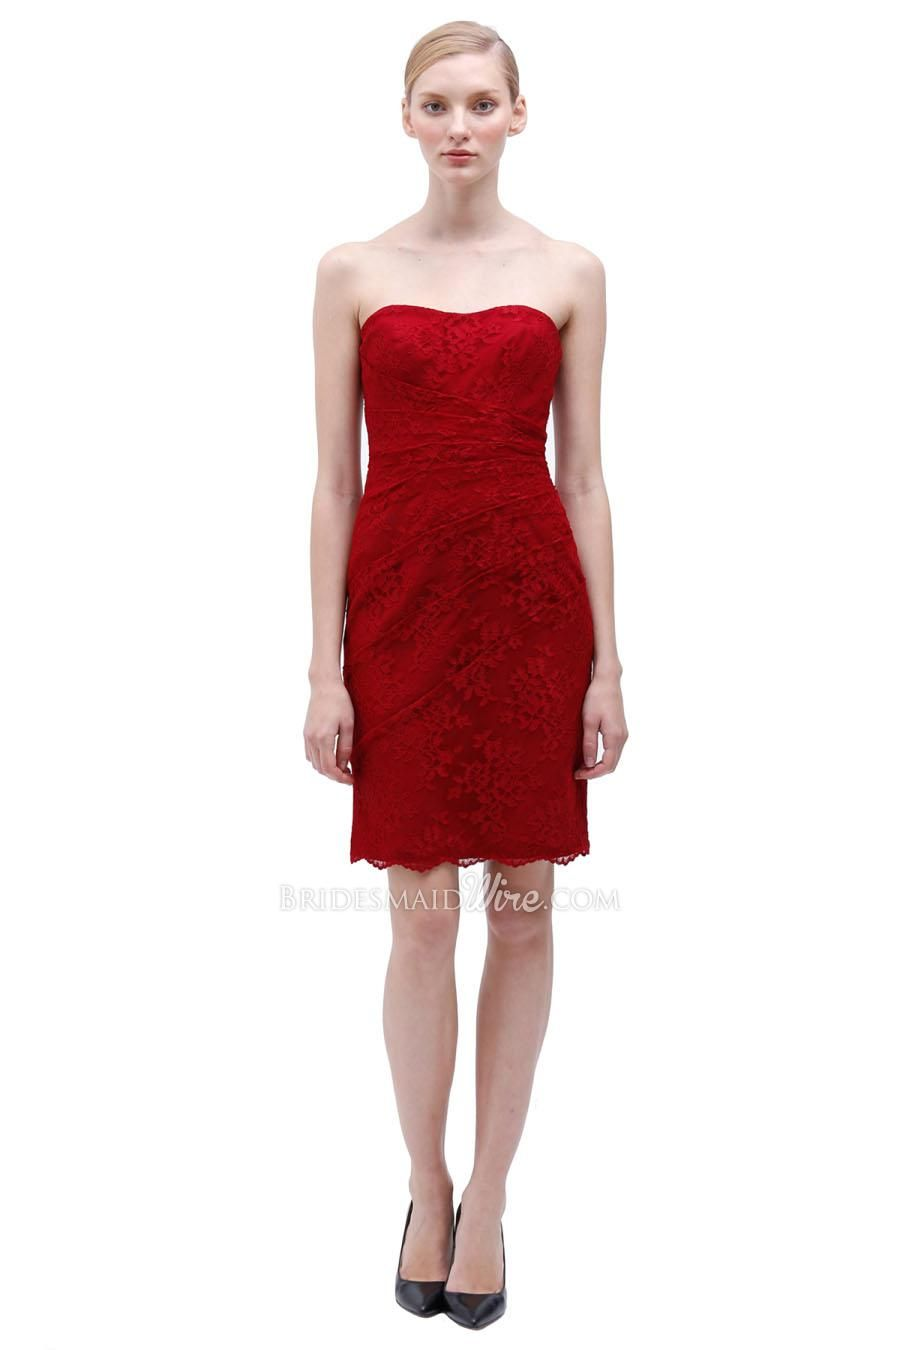 Gorgeous sheath knee length strapless red lace bridesmaid dress gorgeous sheath knee length strapless red lace bridesmaid dress ombrellifo Images